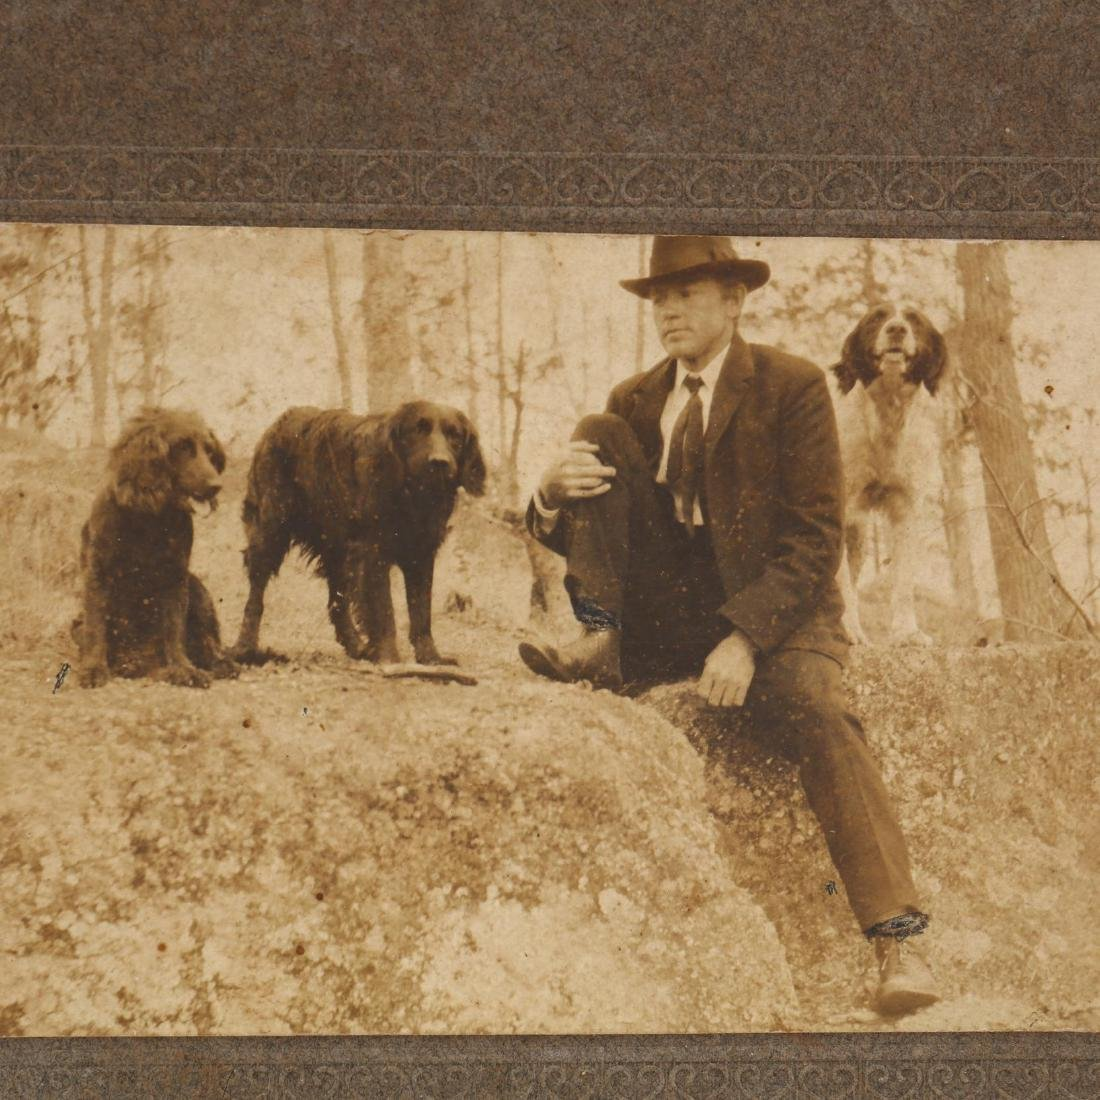 Five Antique Photographs of People With Dogs - 8